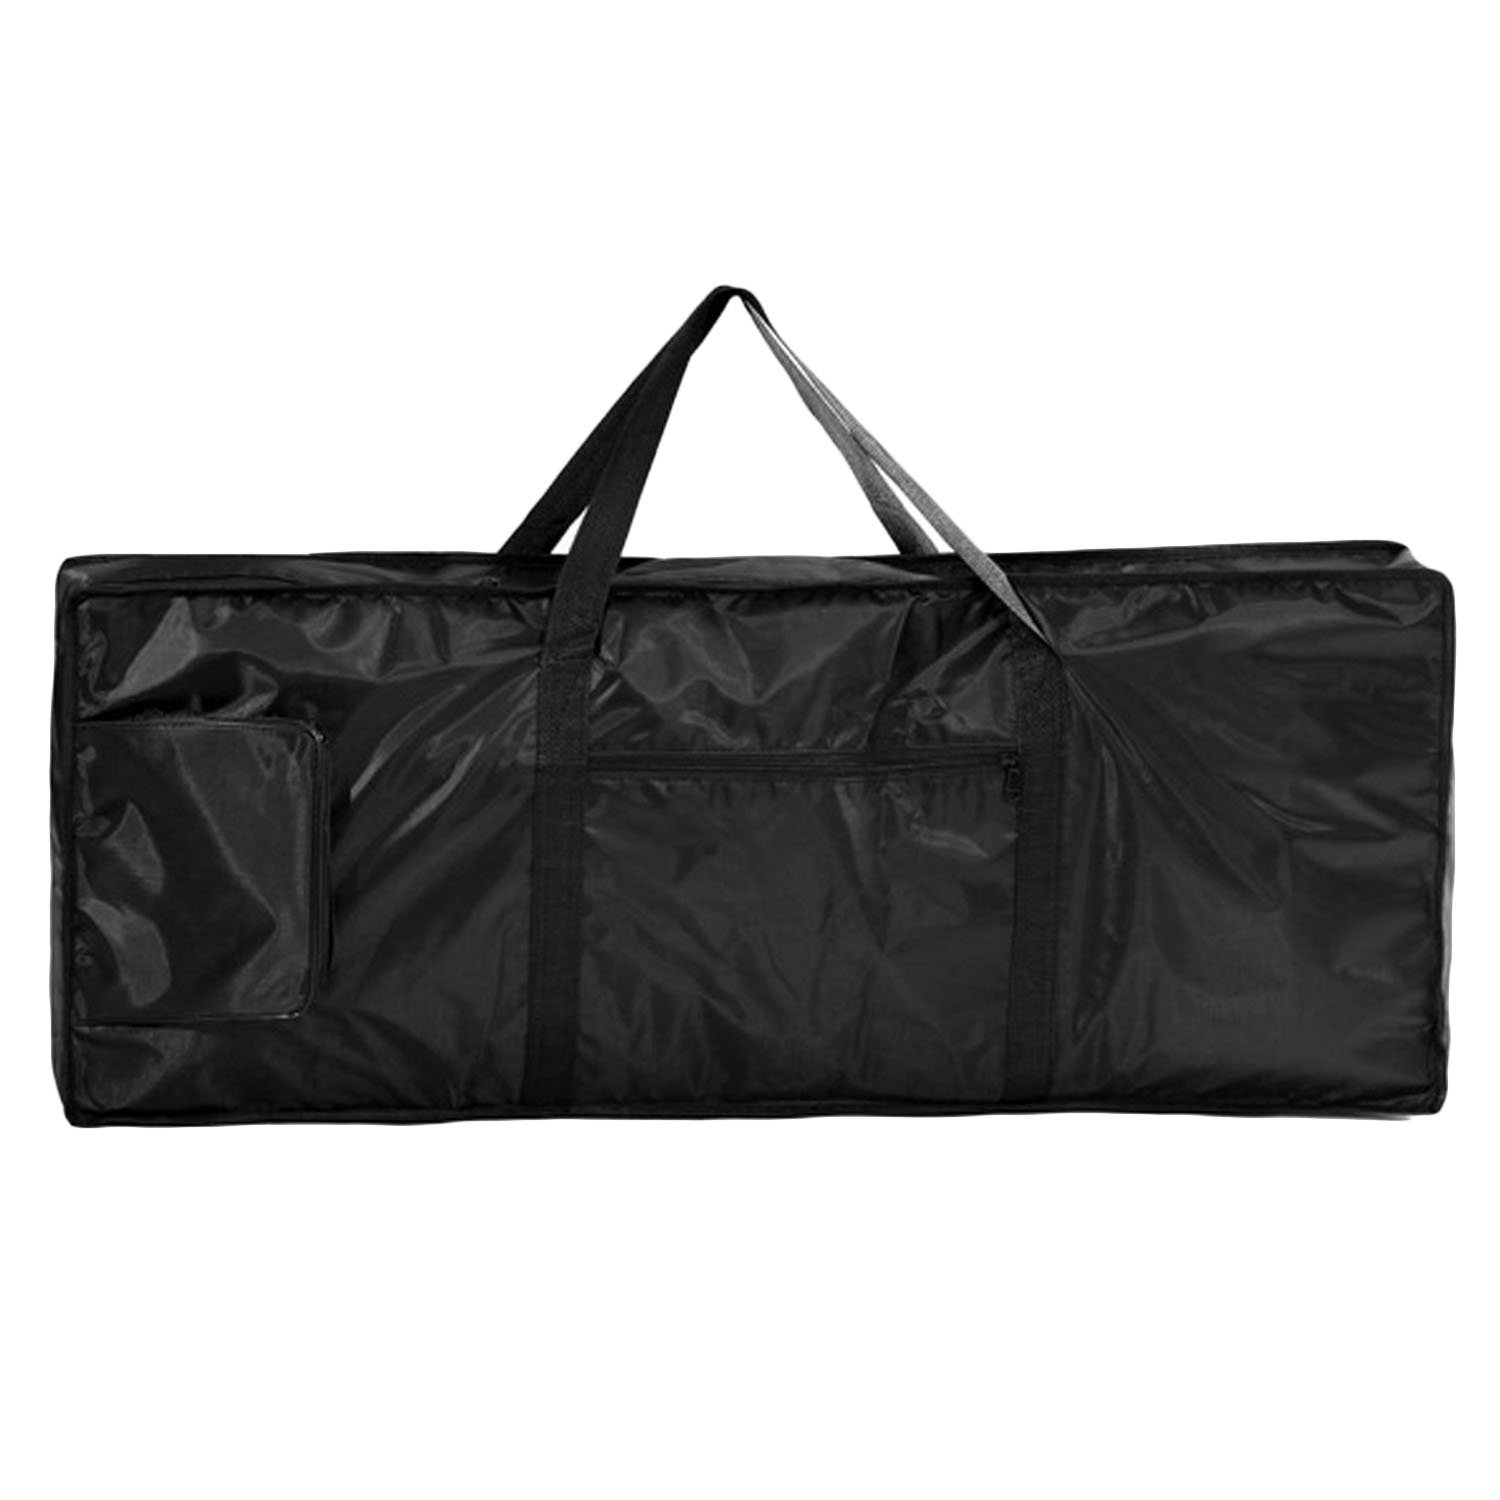 Gosear Portable Thickened Oxford Cloth Electric Piano Keyboard Carry Bag Case For 61-Key Keyboard